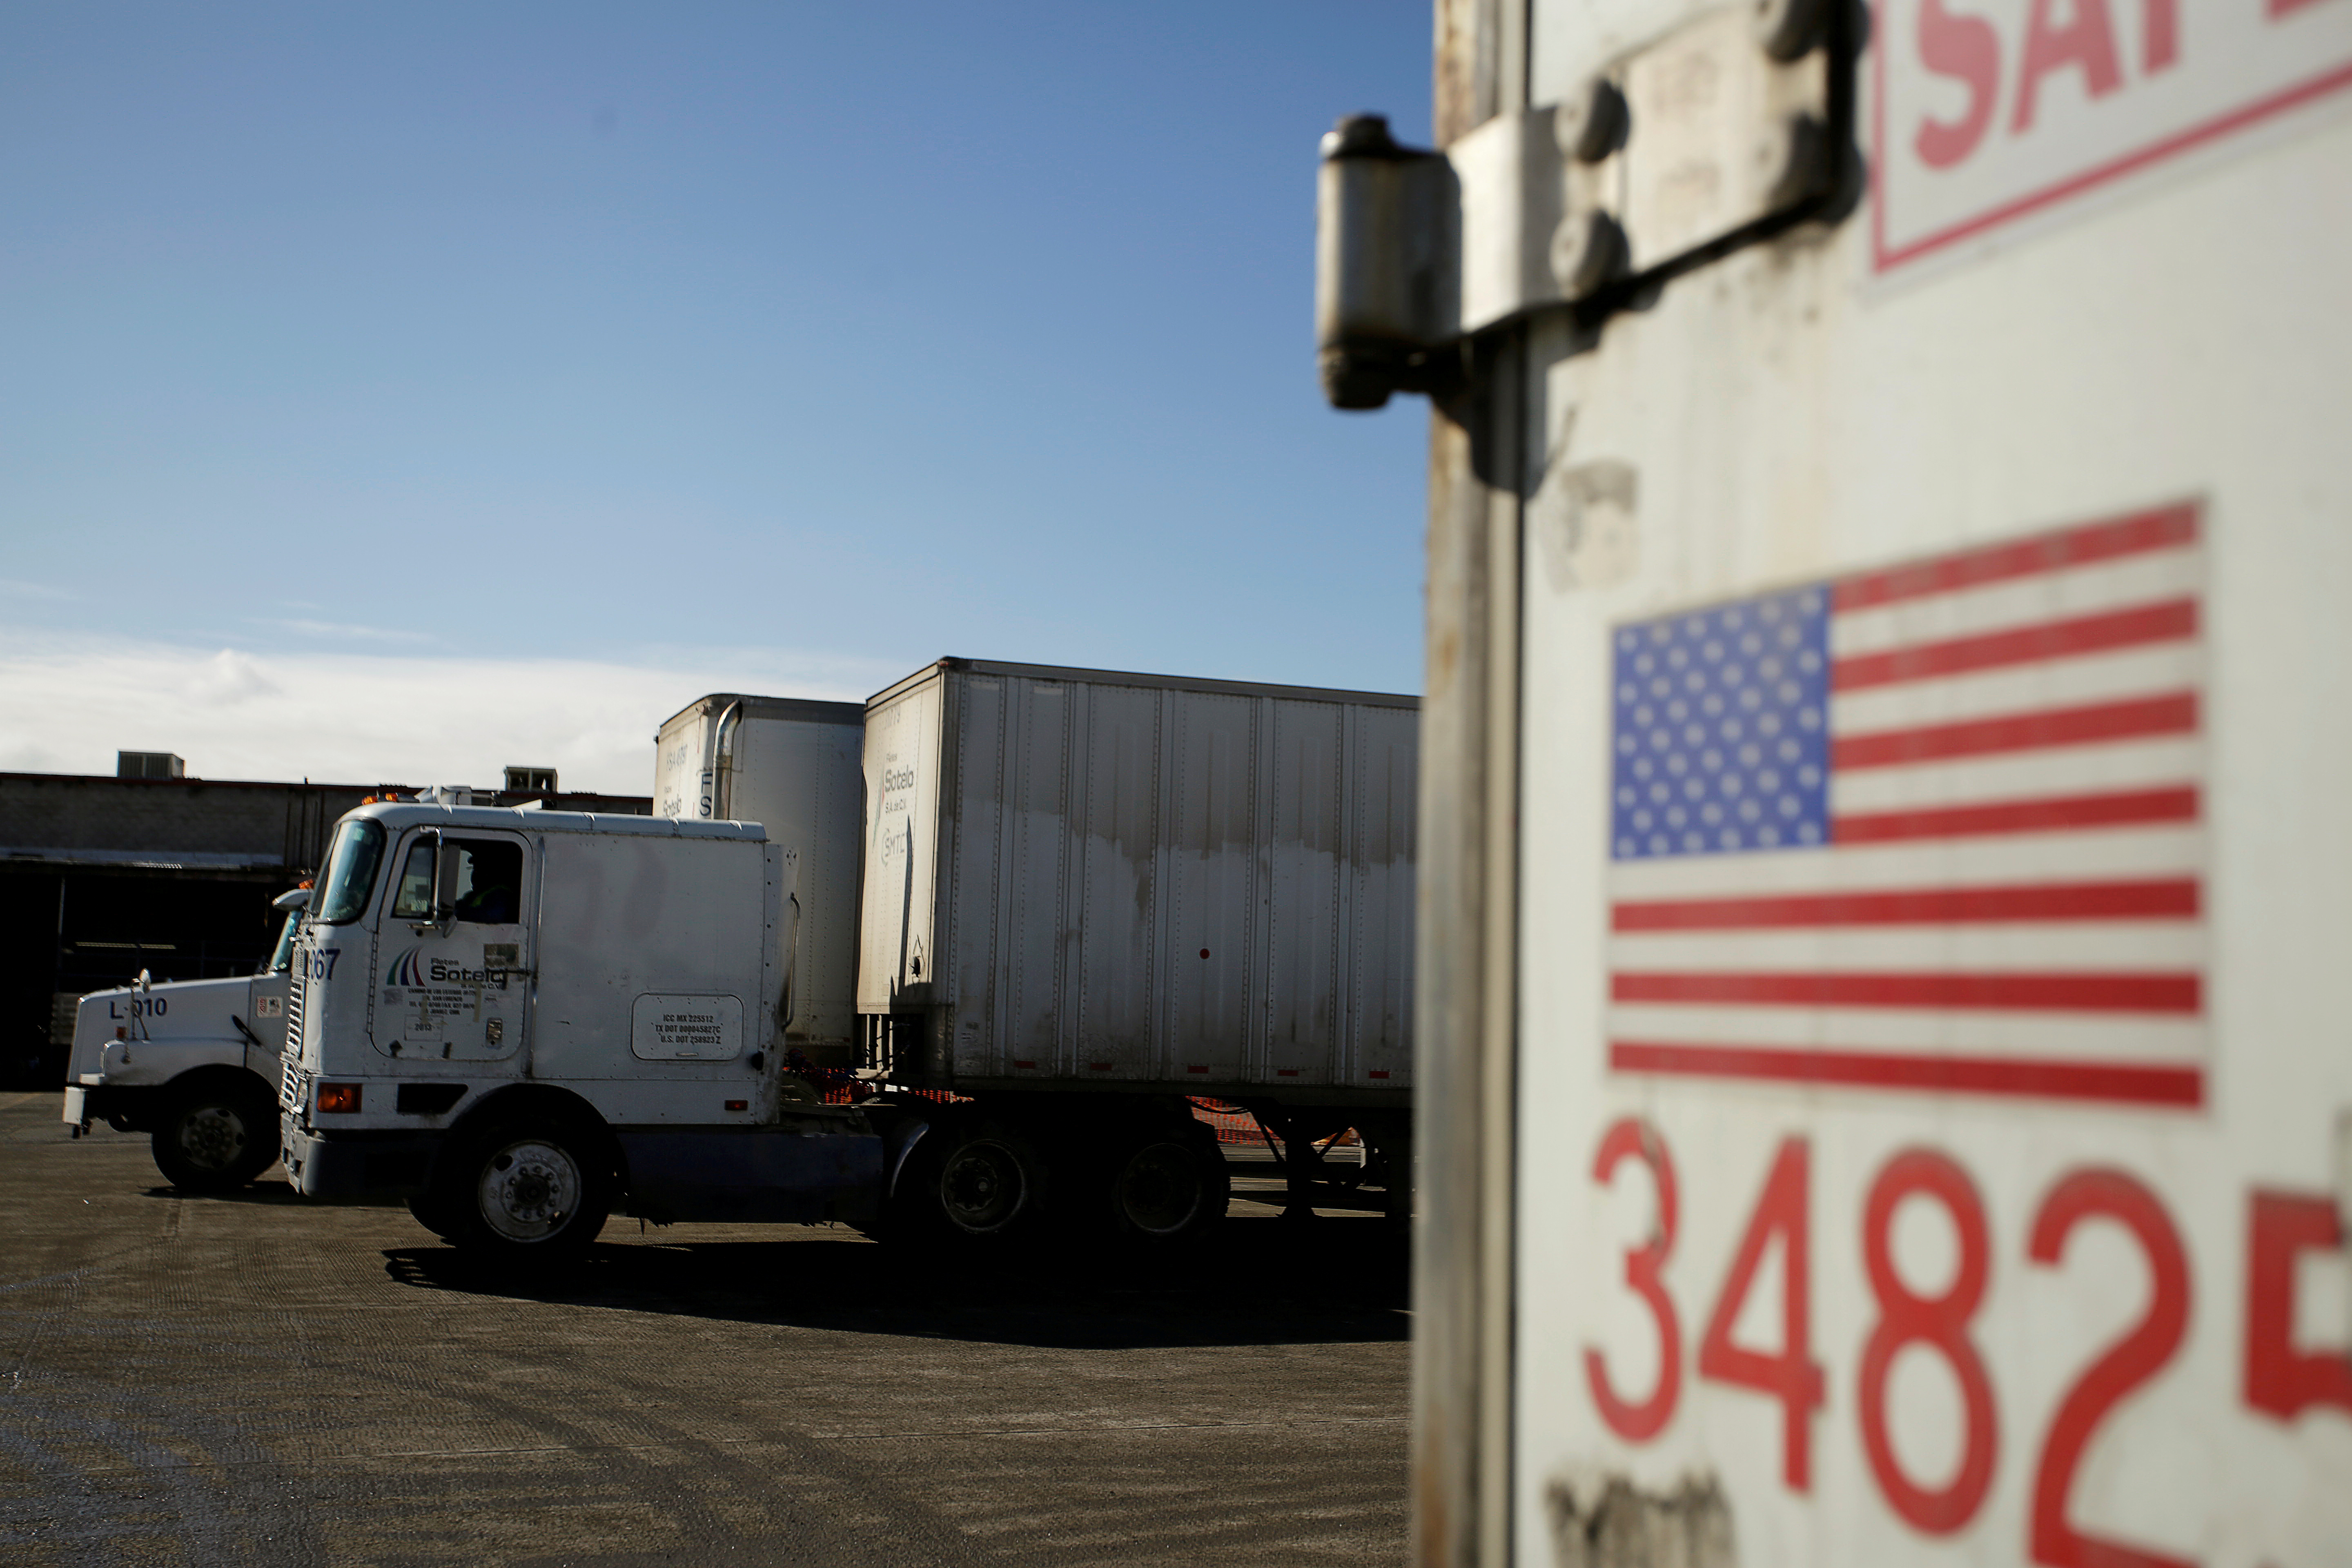 A U.S. flag is pictured on a truck loaded with merchandise at the freight shipping company Sotelo, which transports goods between Mexico and the United States, in Ciudad Juarez, Mexico, December 10, 2019. REUTERS/Jose Luis Gonzalez/